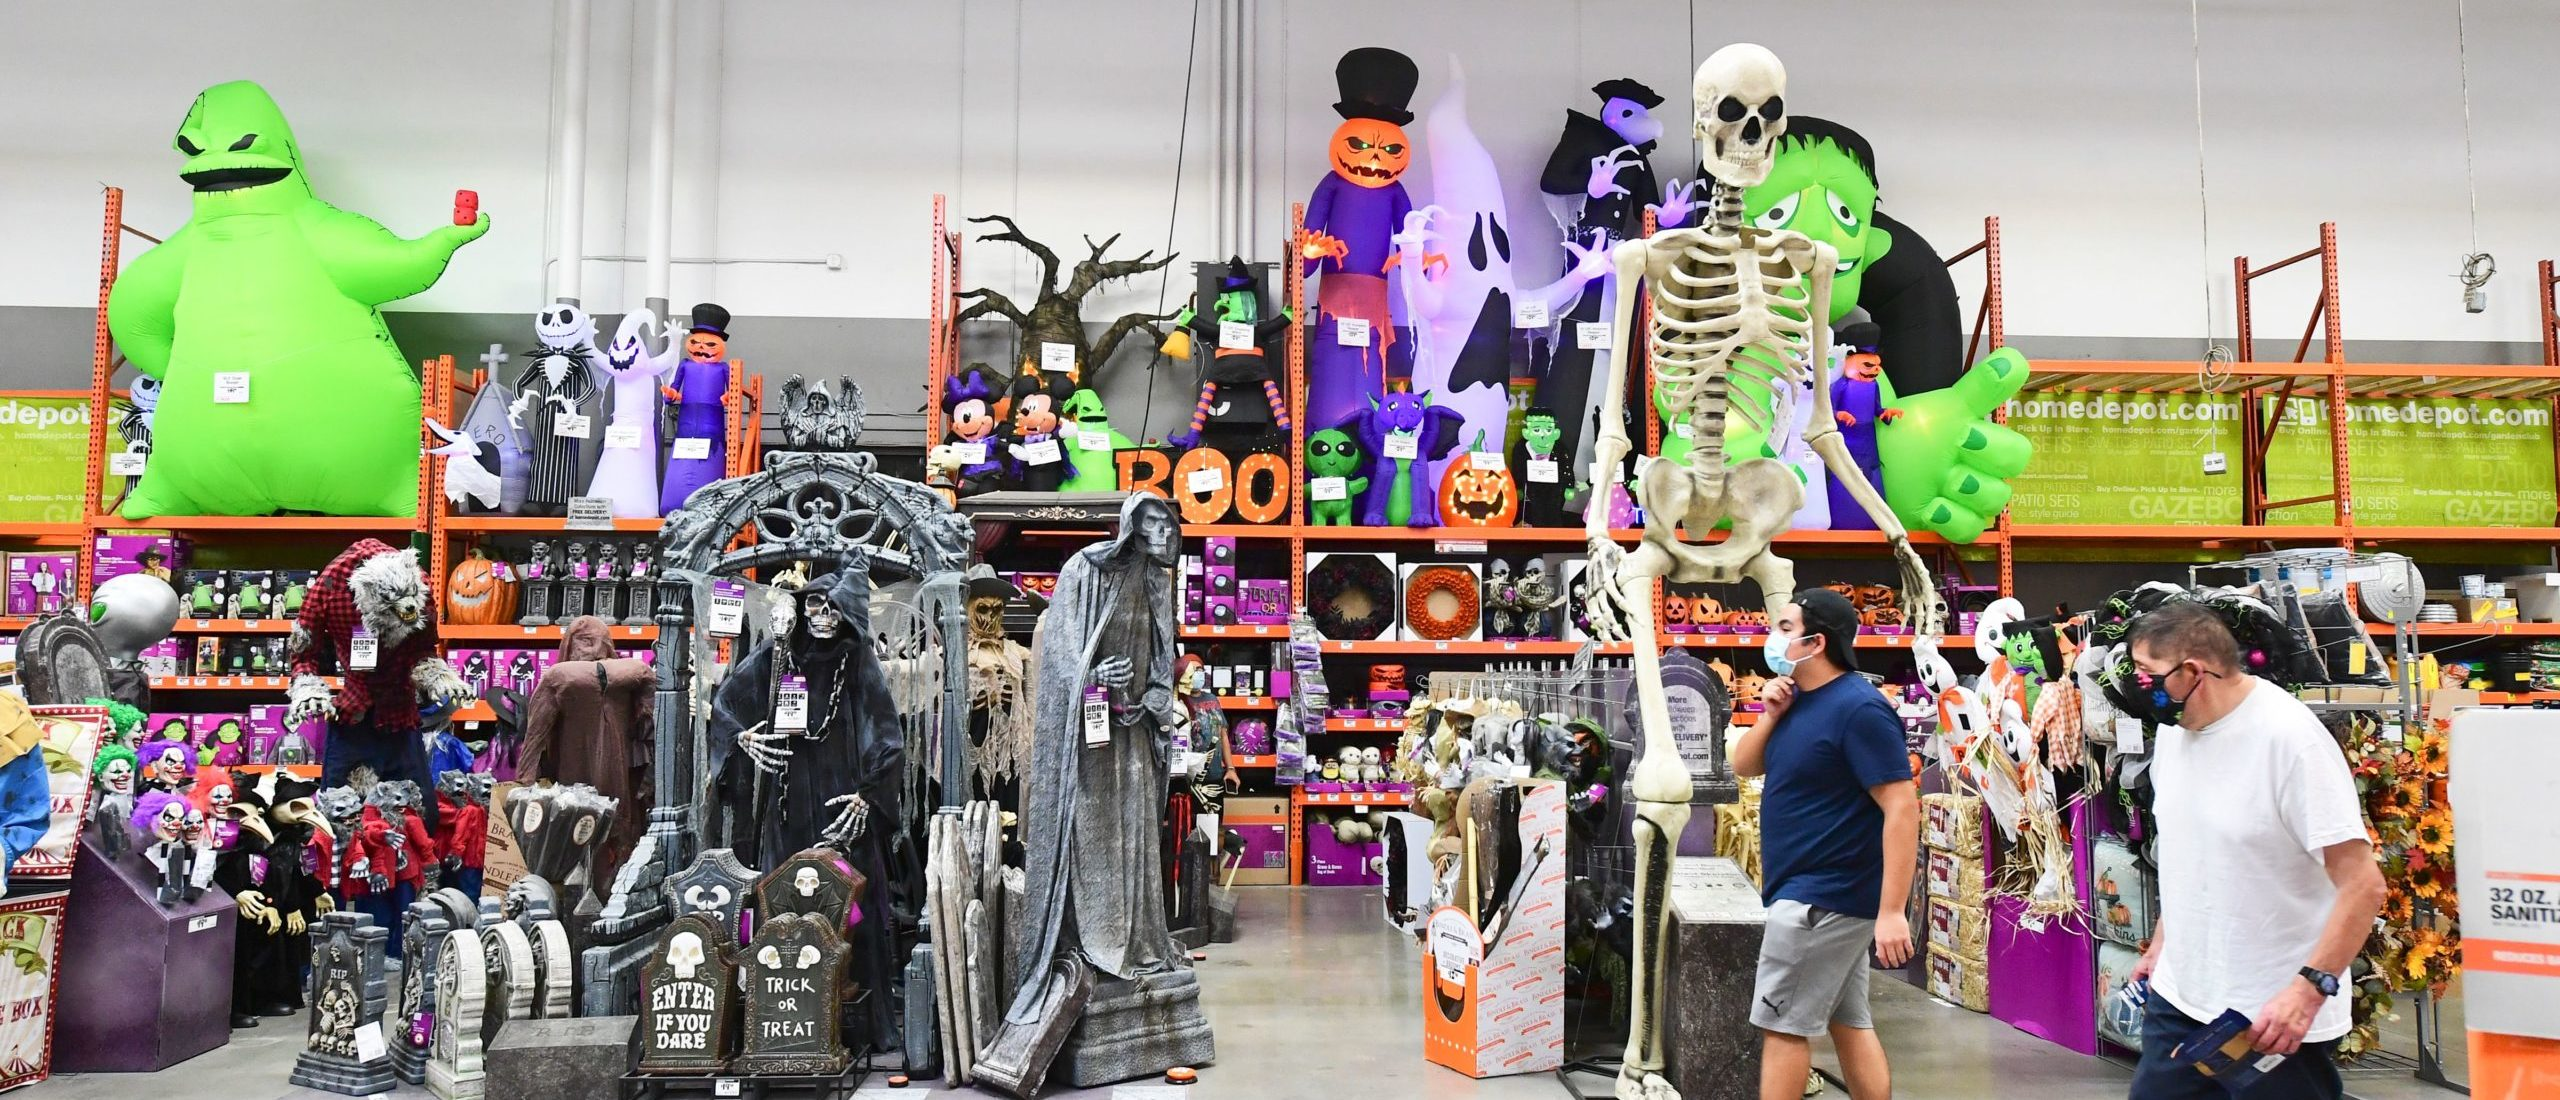 Halloween and Christmas are two of the top spending holidays in the United States, but retailers are spooked by Halloween this year due to the coronavirus pandemic. (Photo by FREDERIC J. BROWN/AFP/Getty Images)